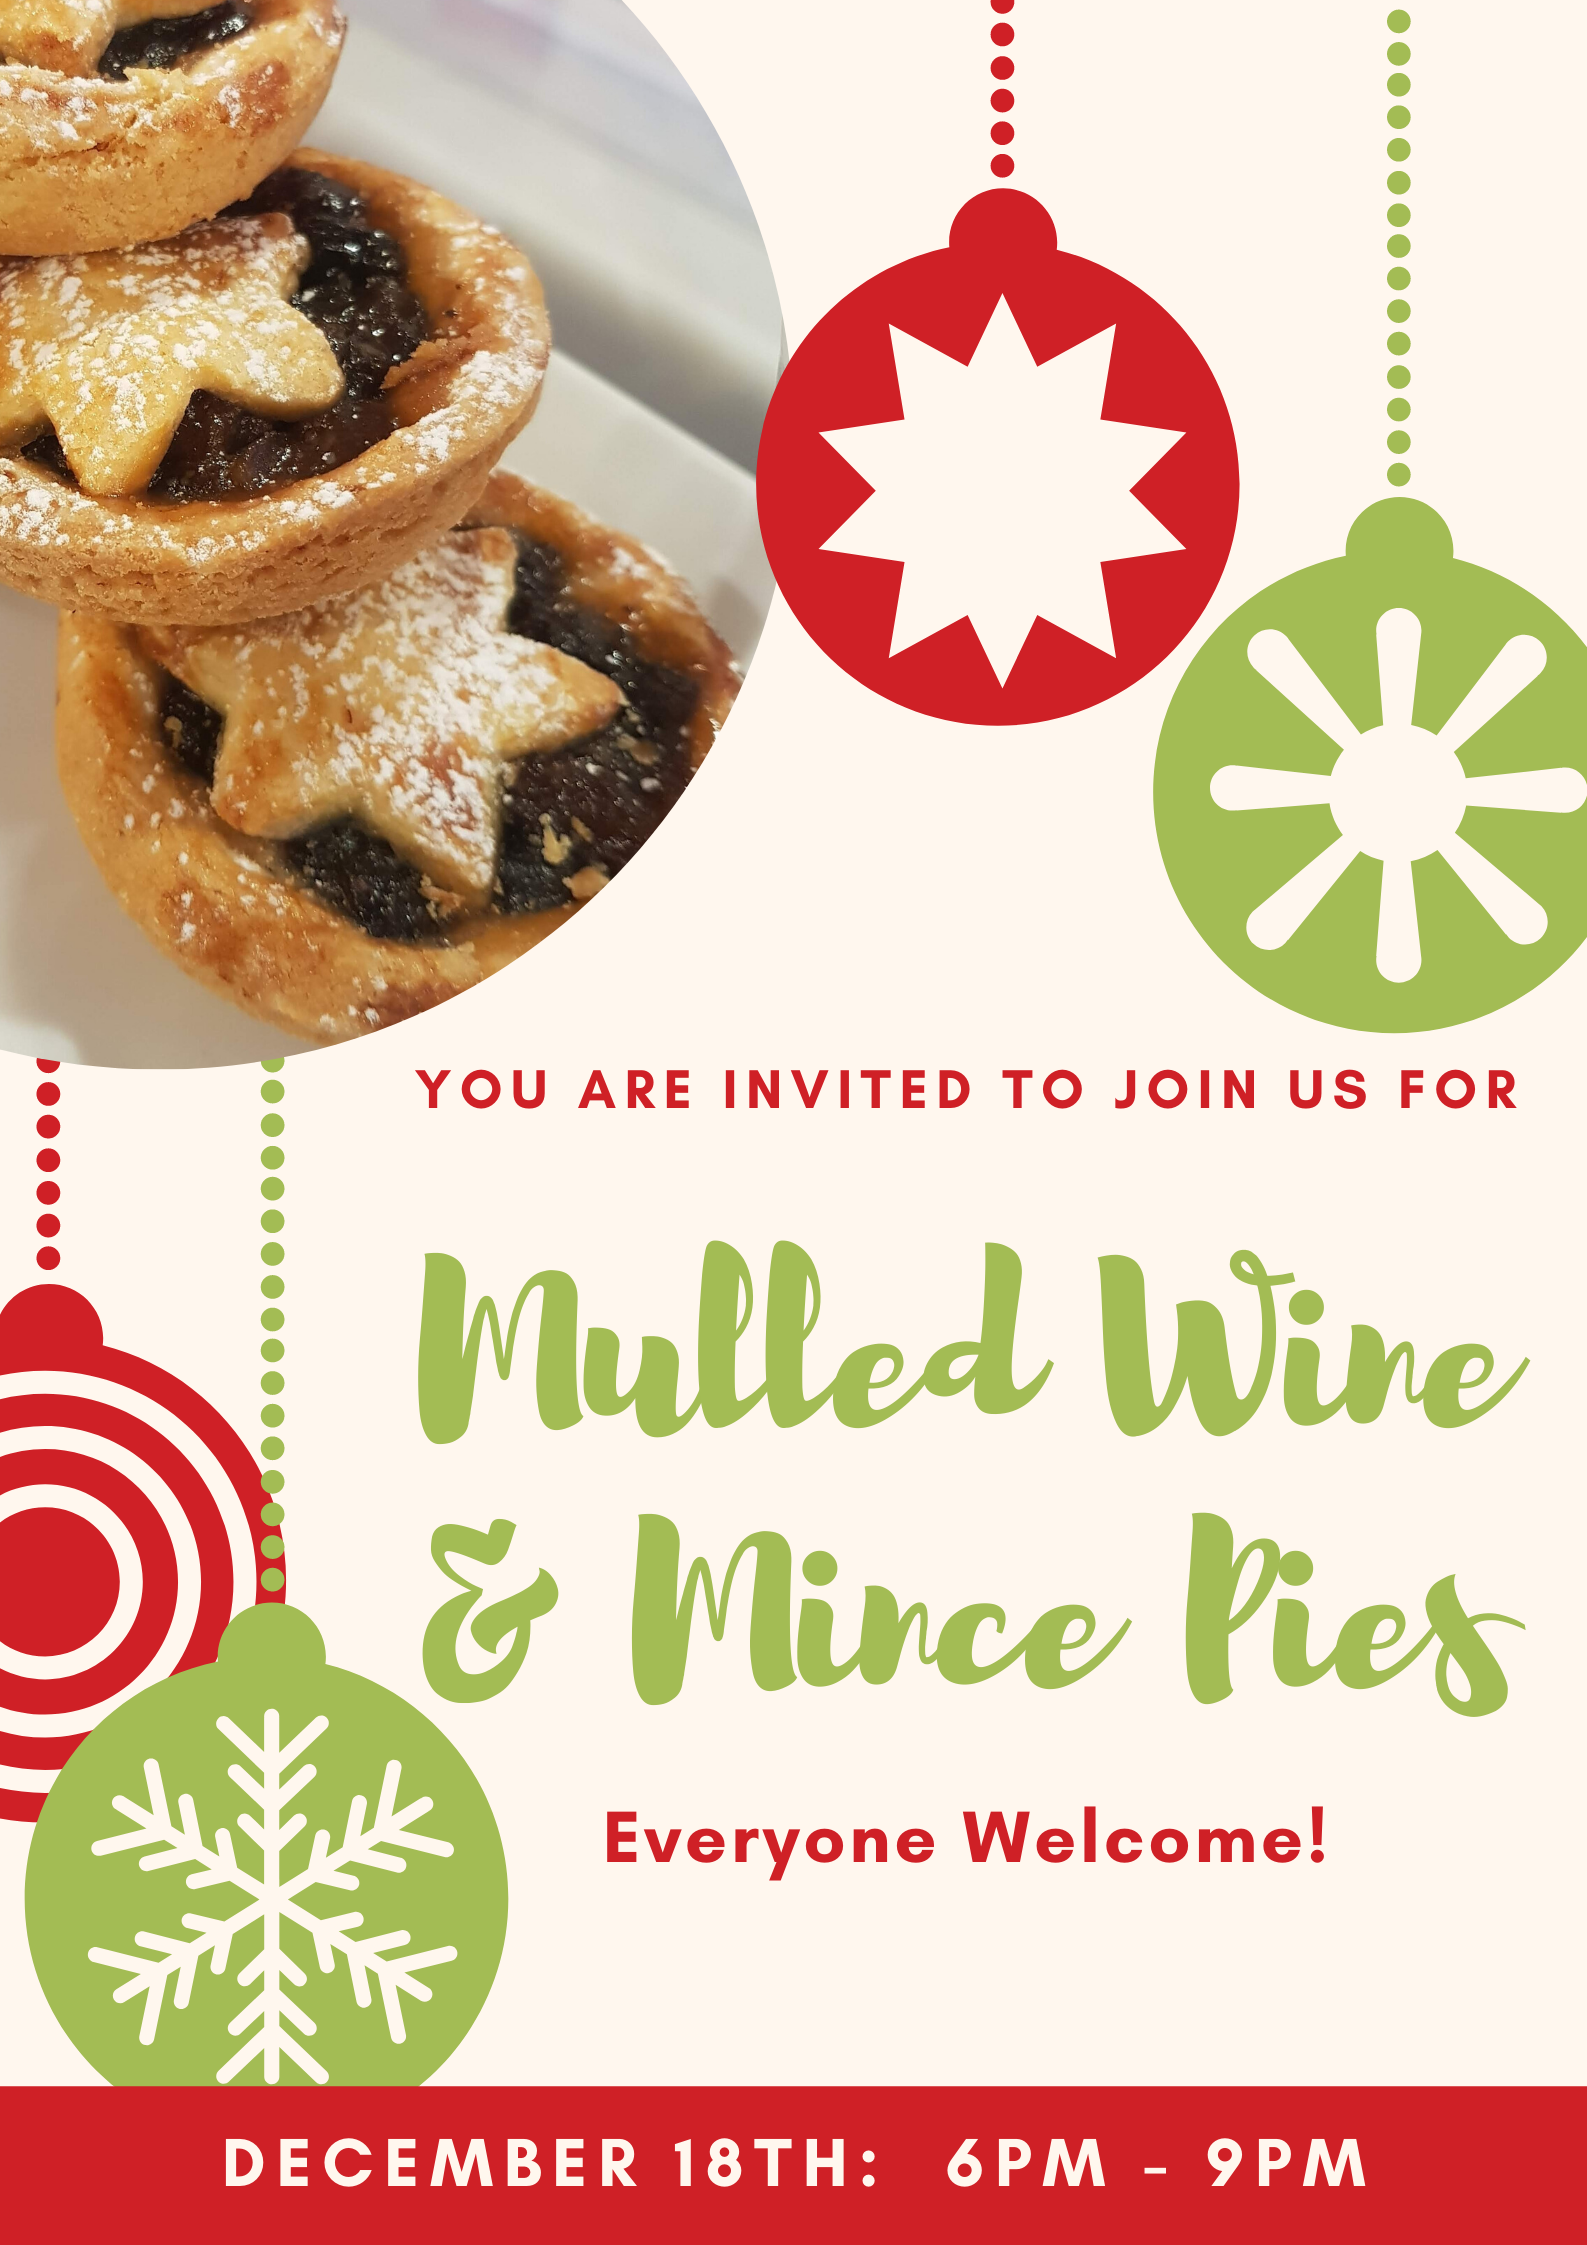 Mulled Wine & Mince Pies: Dec 18th 6-9pm